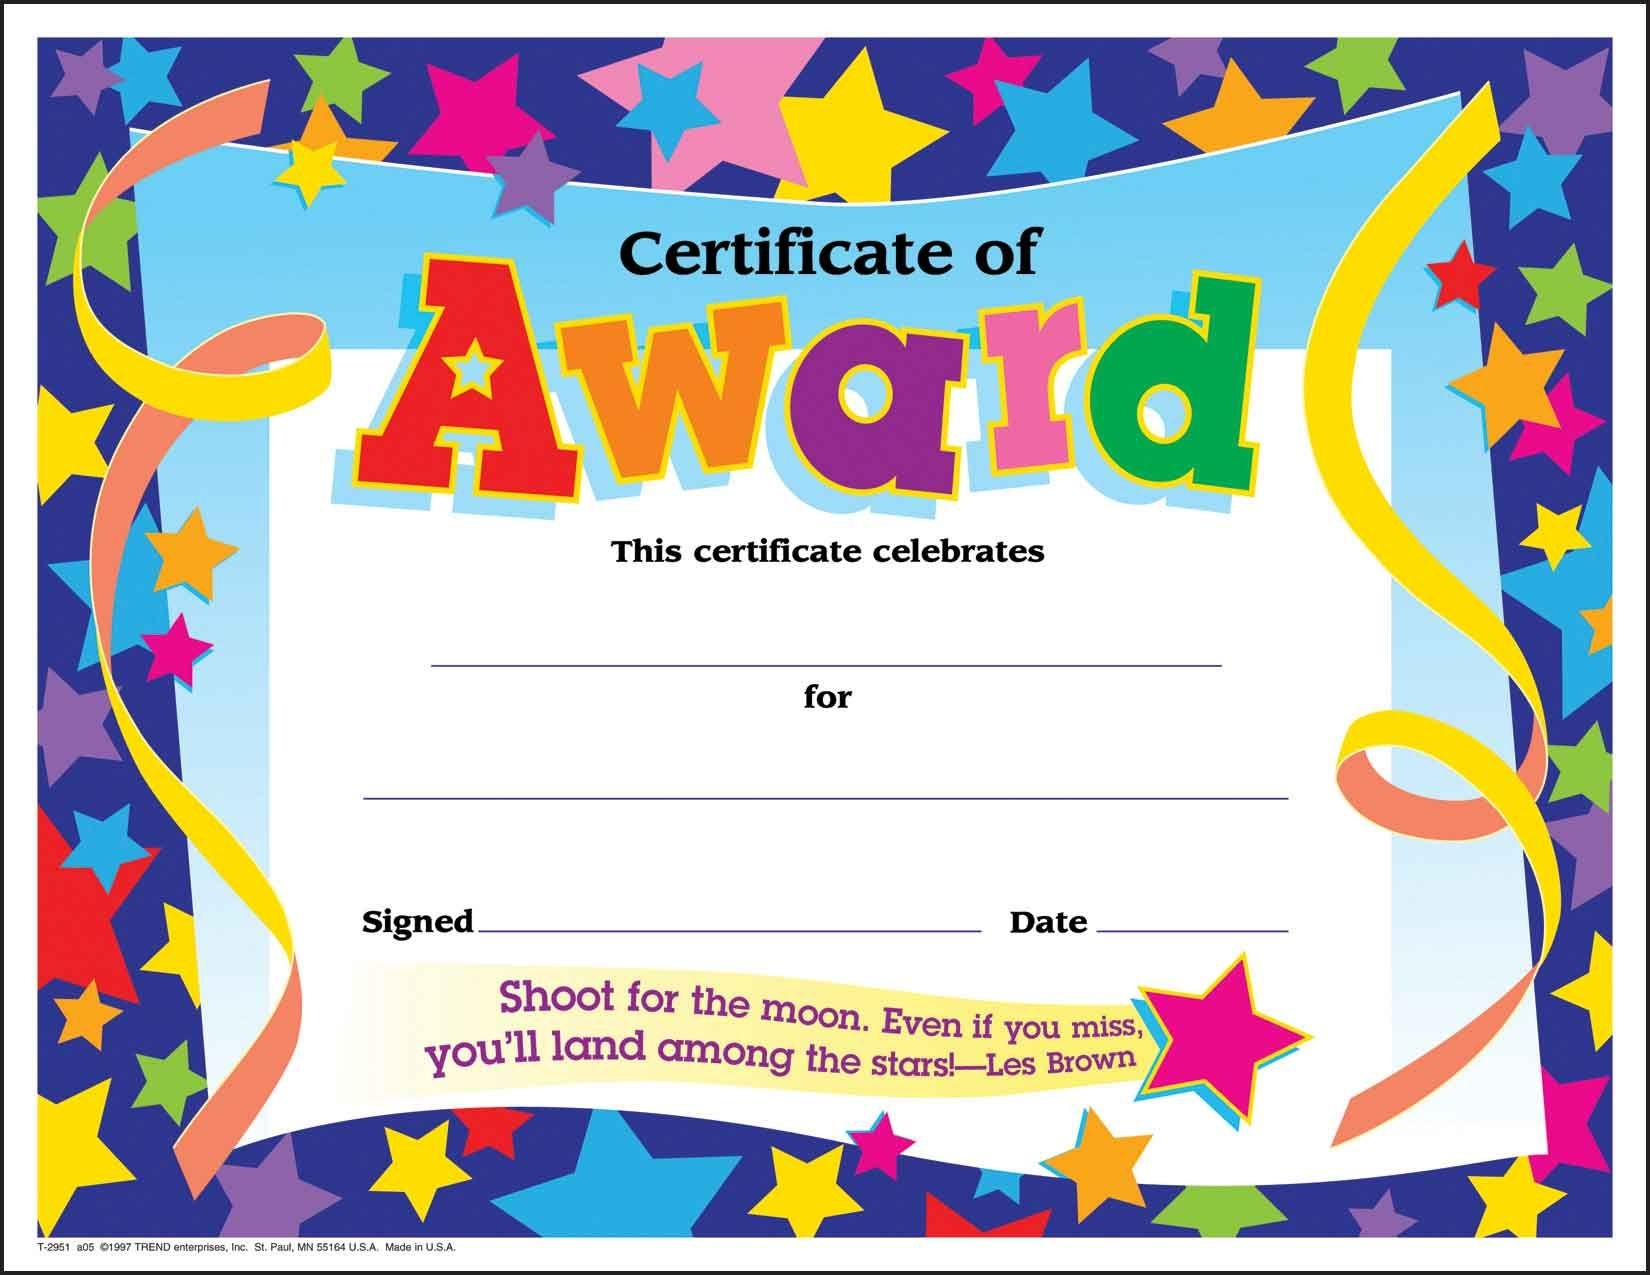 Certificate Template For Kids Free Certificate Templates - Free Printable Certificates And Awards